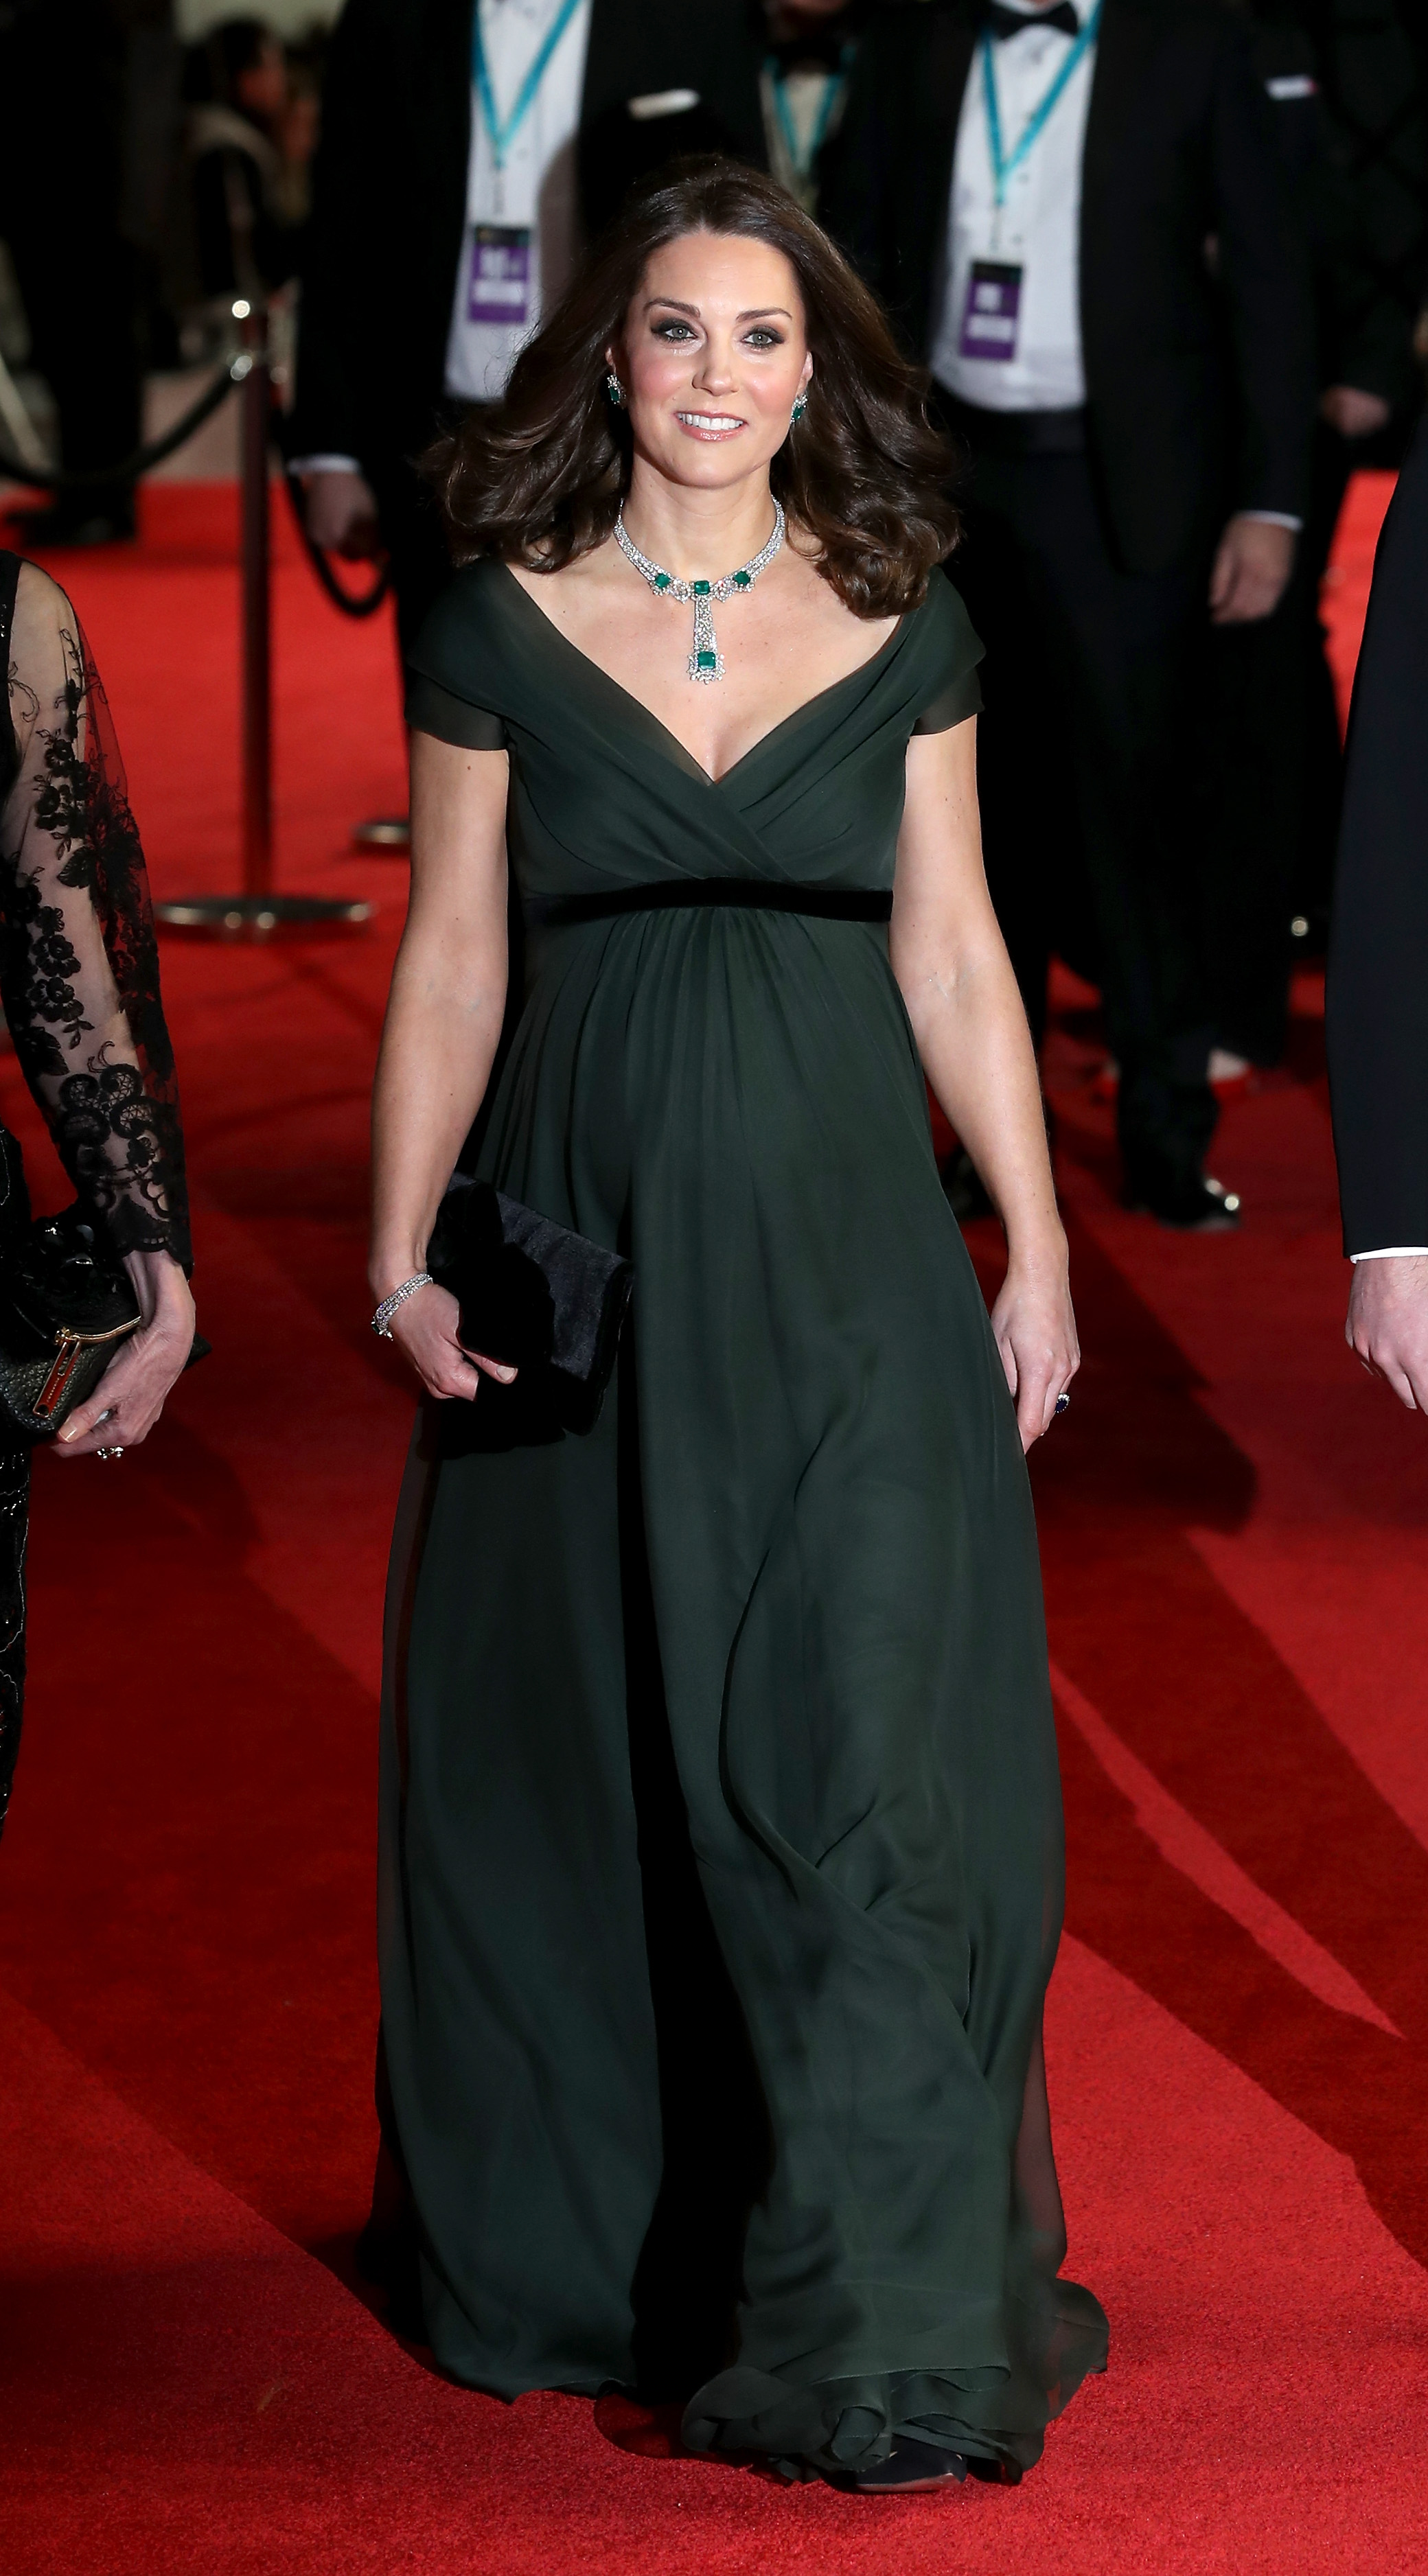 Catherine, Duchess of Cambridge, attends the EE British Academy Film Awards (BAFTA) held at Royal Albert Hall on February 18, 2018, in London, England. (Getty Images)